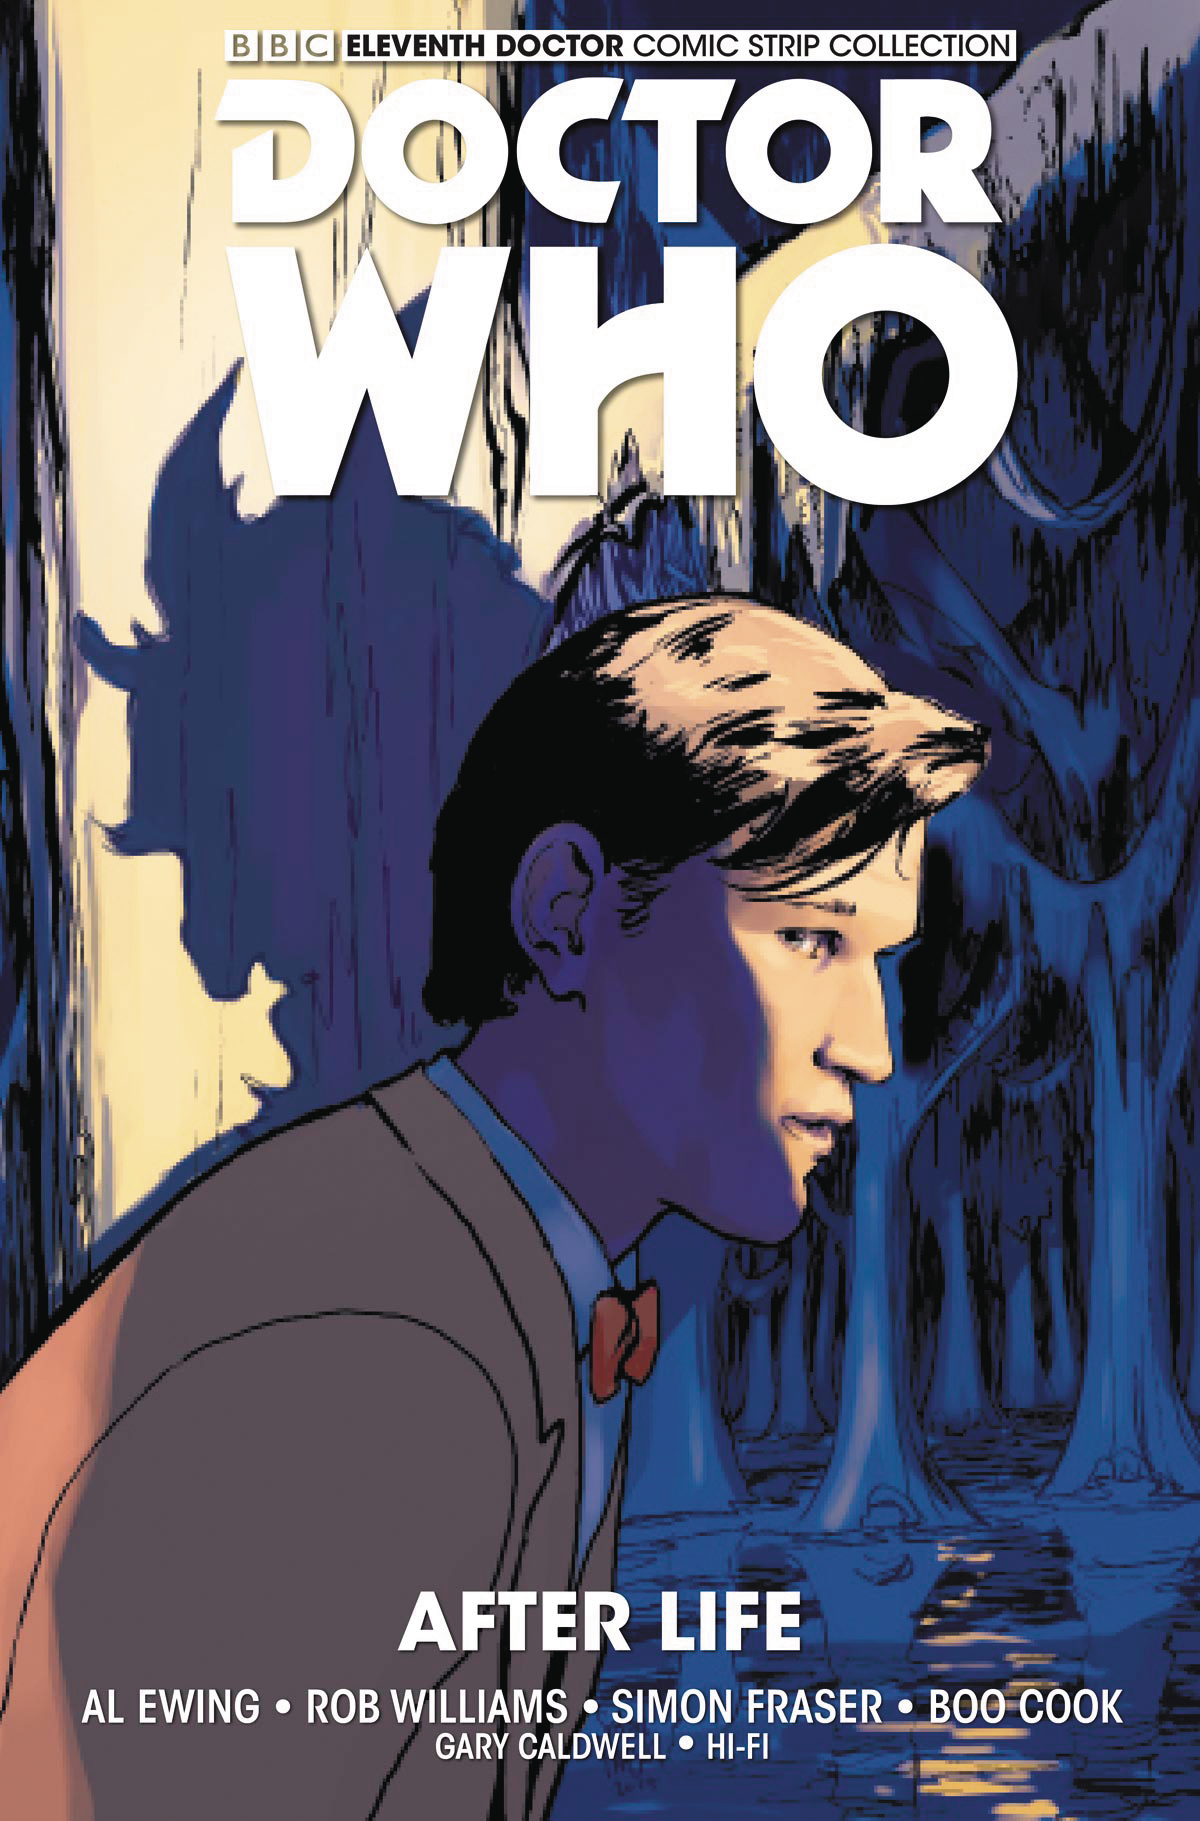 DOCTOR WHO 11TH TP LTD ED VOL 01 AFTER LIFE